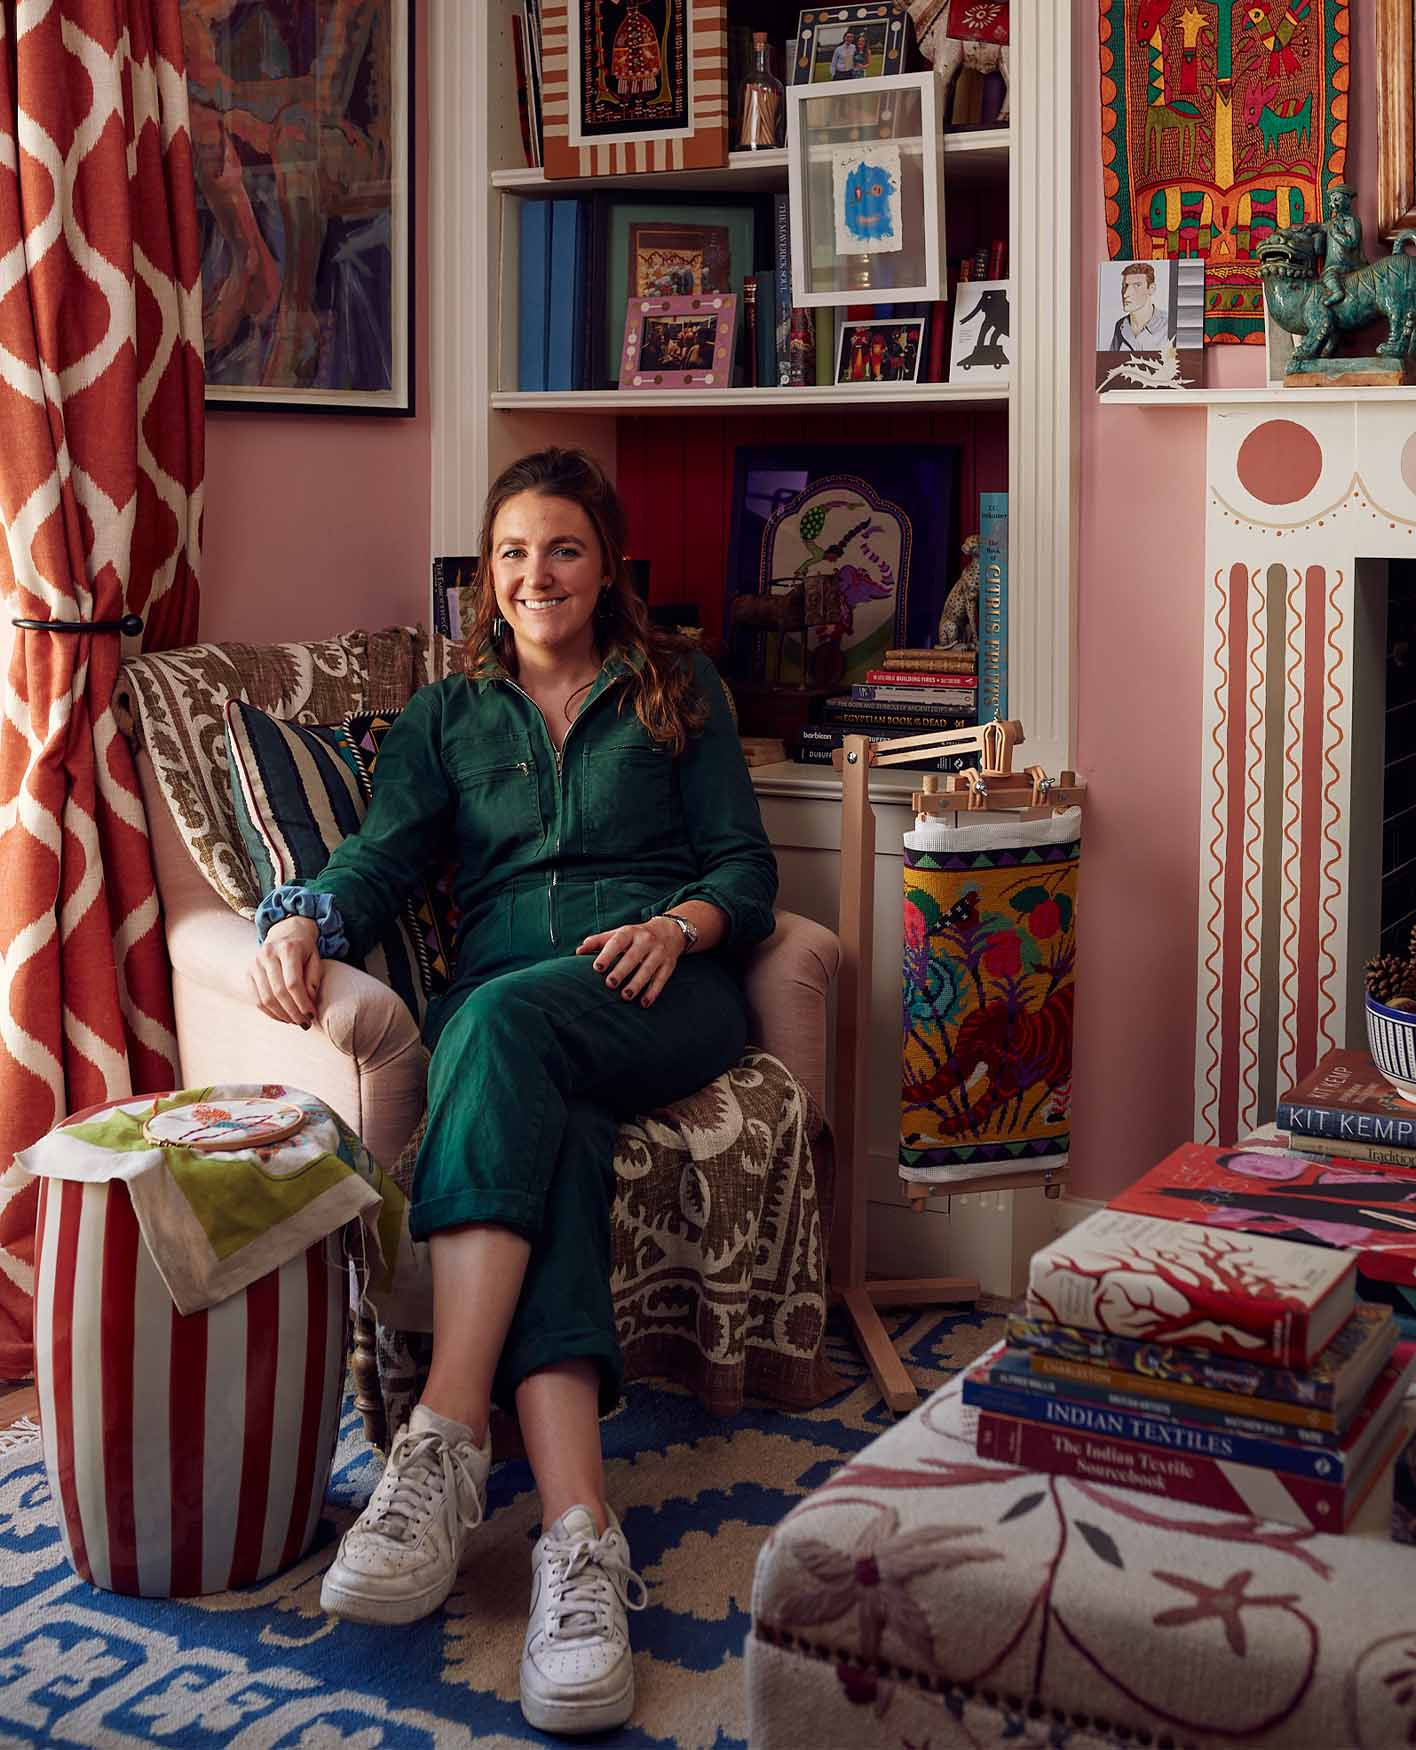 Eppie Thompson sat in her pink home in East London, wearing a green jumpsuit and surrounded by pattern and colour